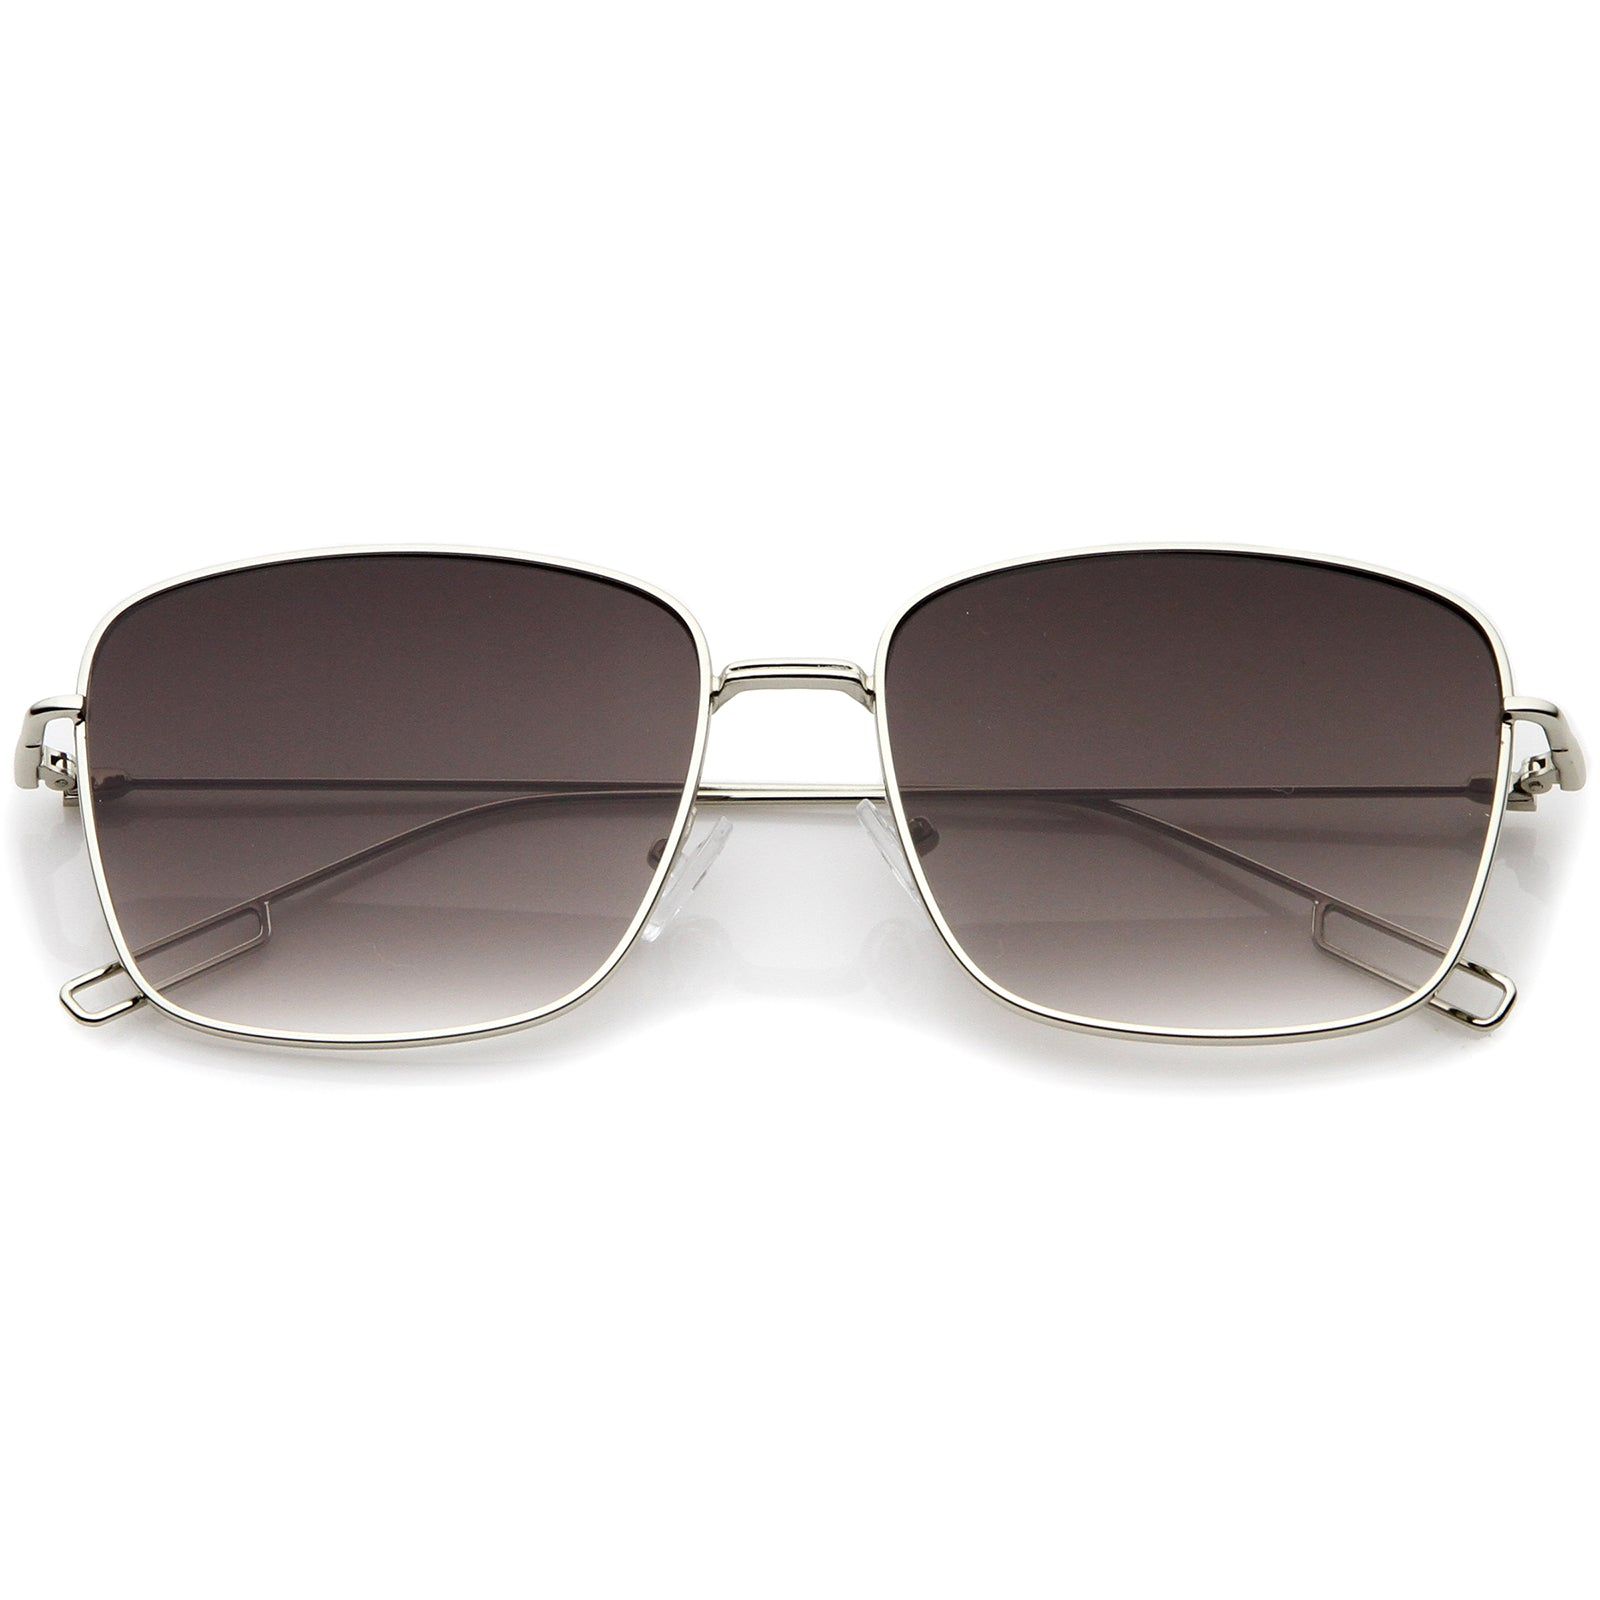 Minimal Wire Metal Frame Hook Temple Flat Lens Square Sunglasses 58mm - sunglass.la - 6